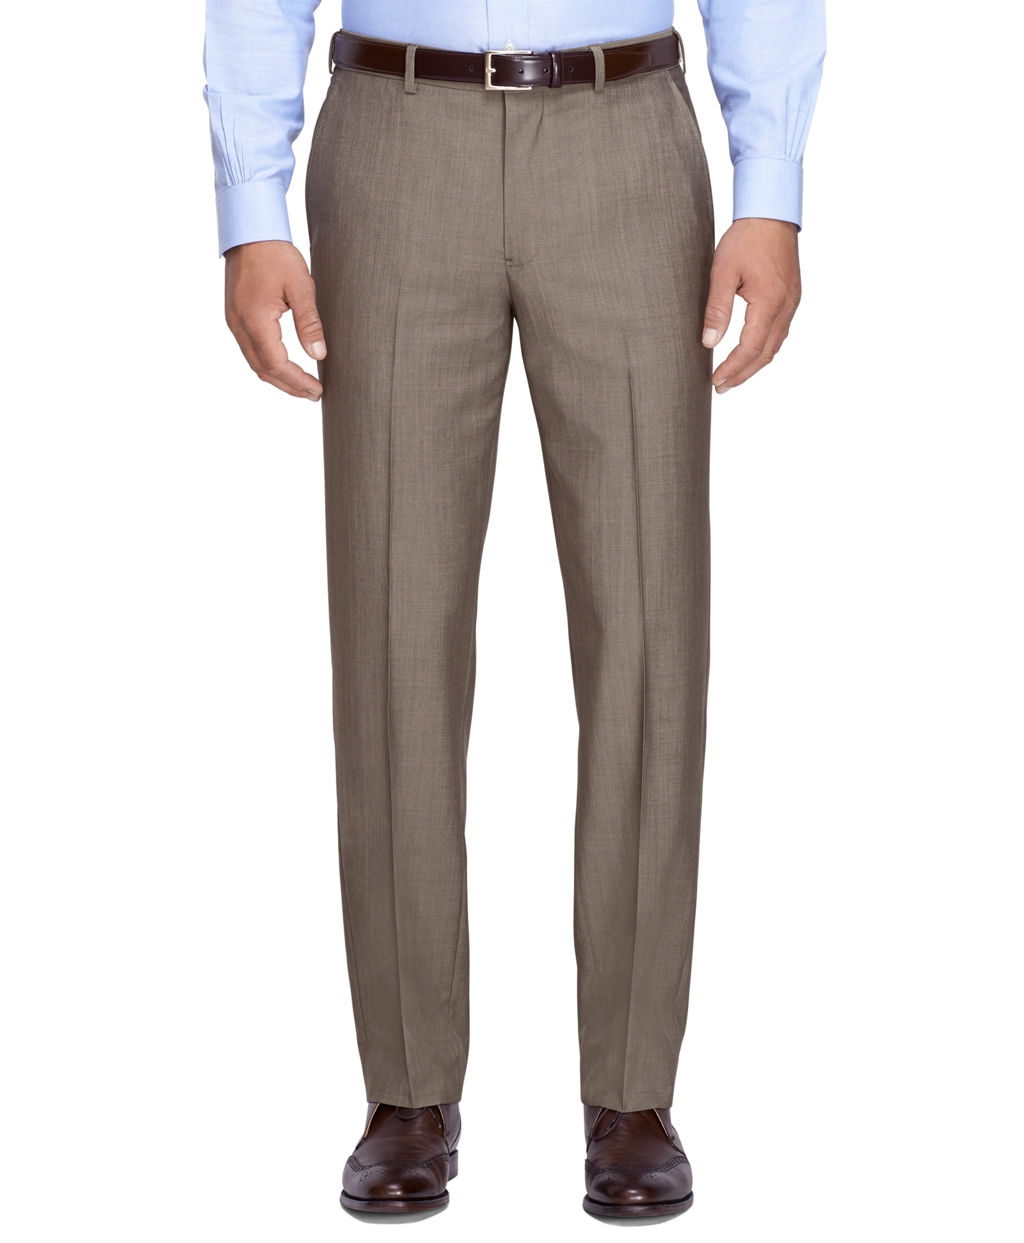 Brooks brothers fitzgerald fit mohair trousers in brown for Brooks brothers dress shirt fit guide